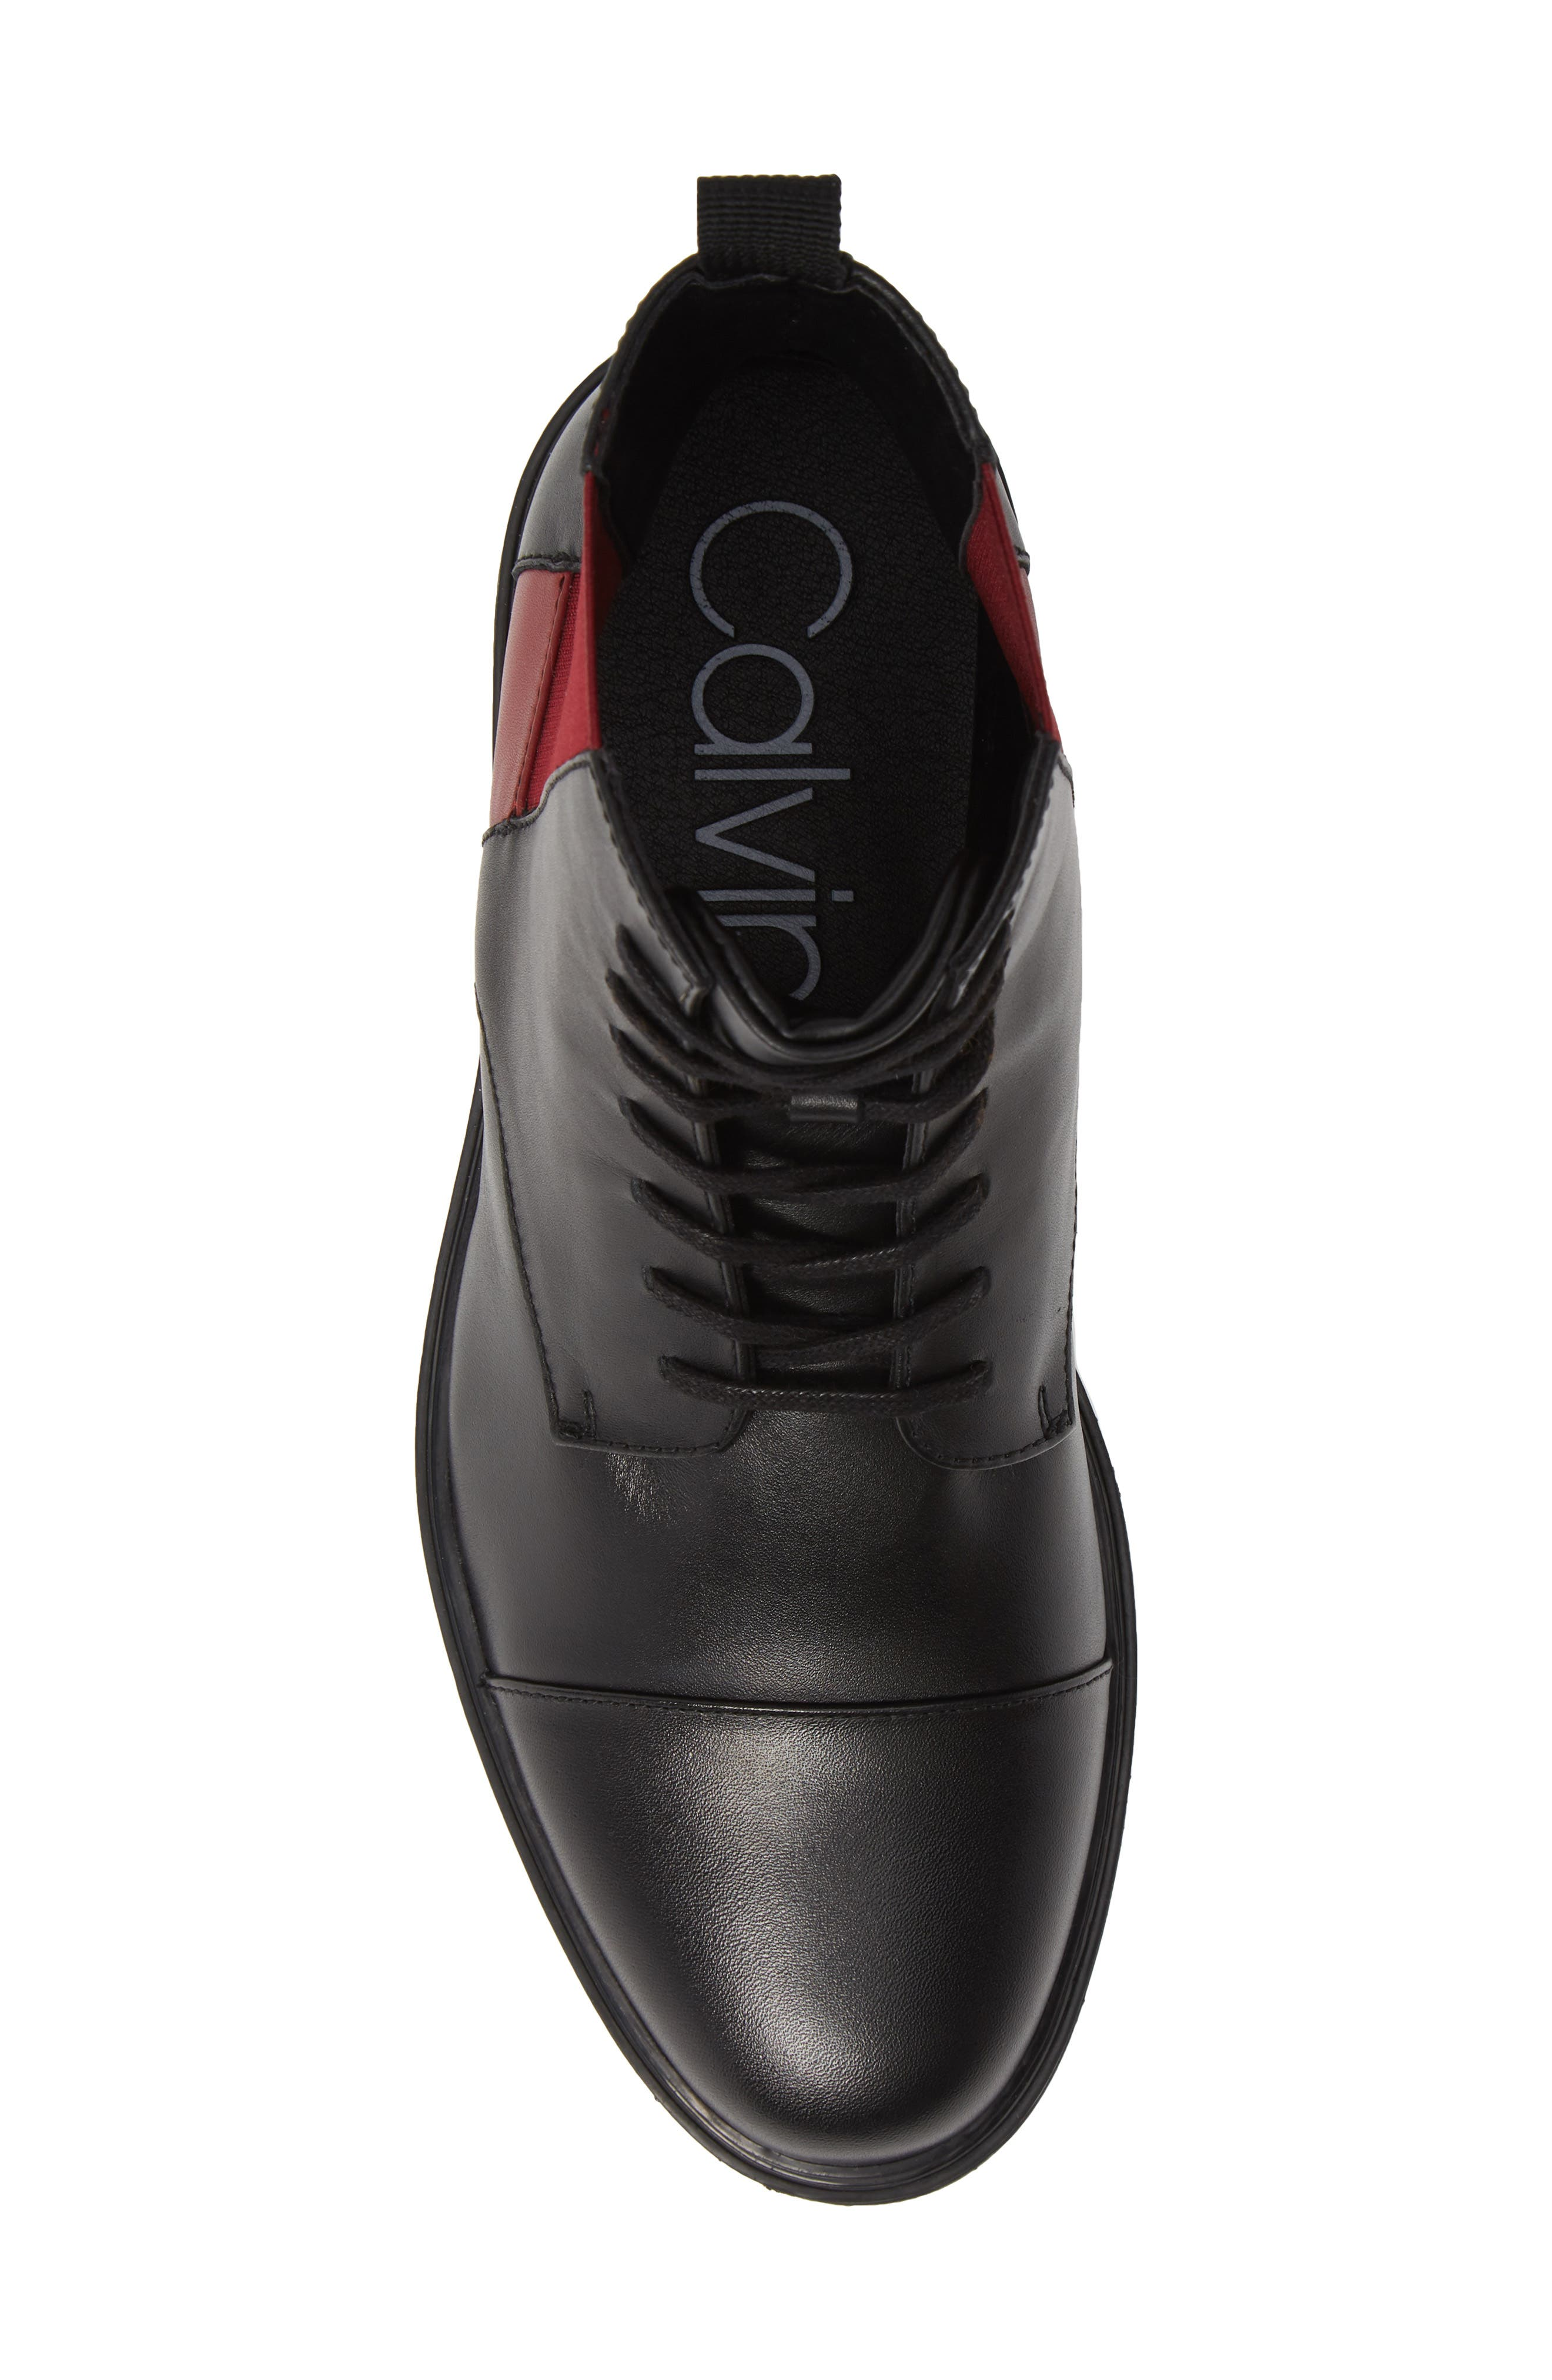 Dameon Lace-Up Boot,                             Alternate thumbnail 5, color,                             BLACK/ RED ROCK LEATHER